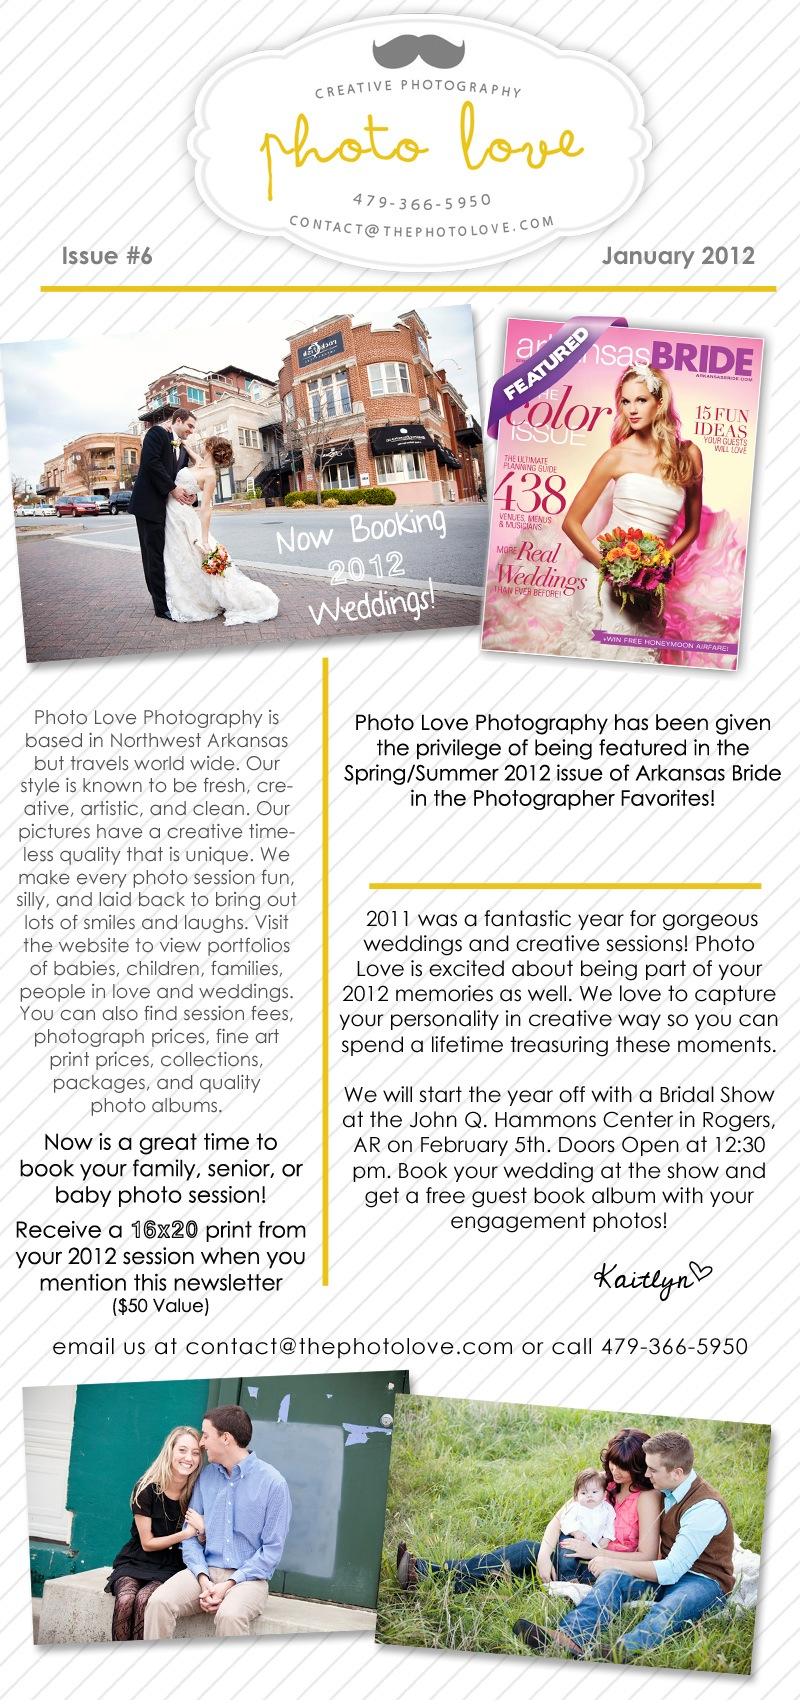 Photo Love Photography January 2012 Newsletter